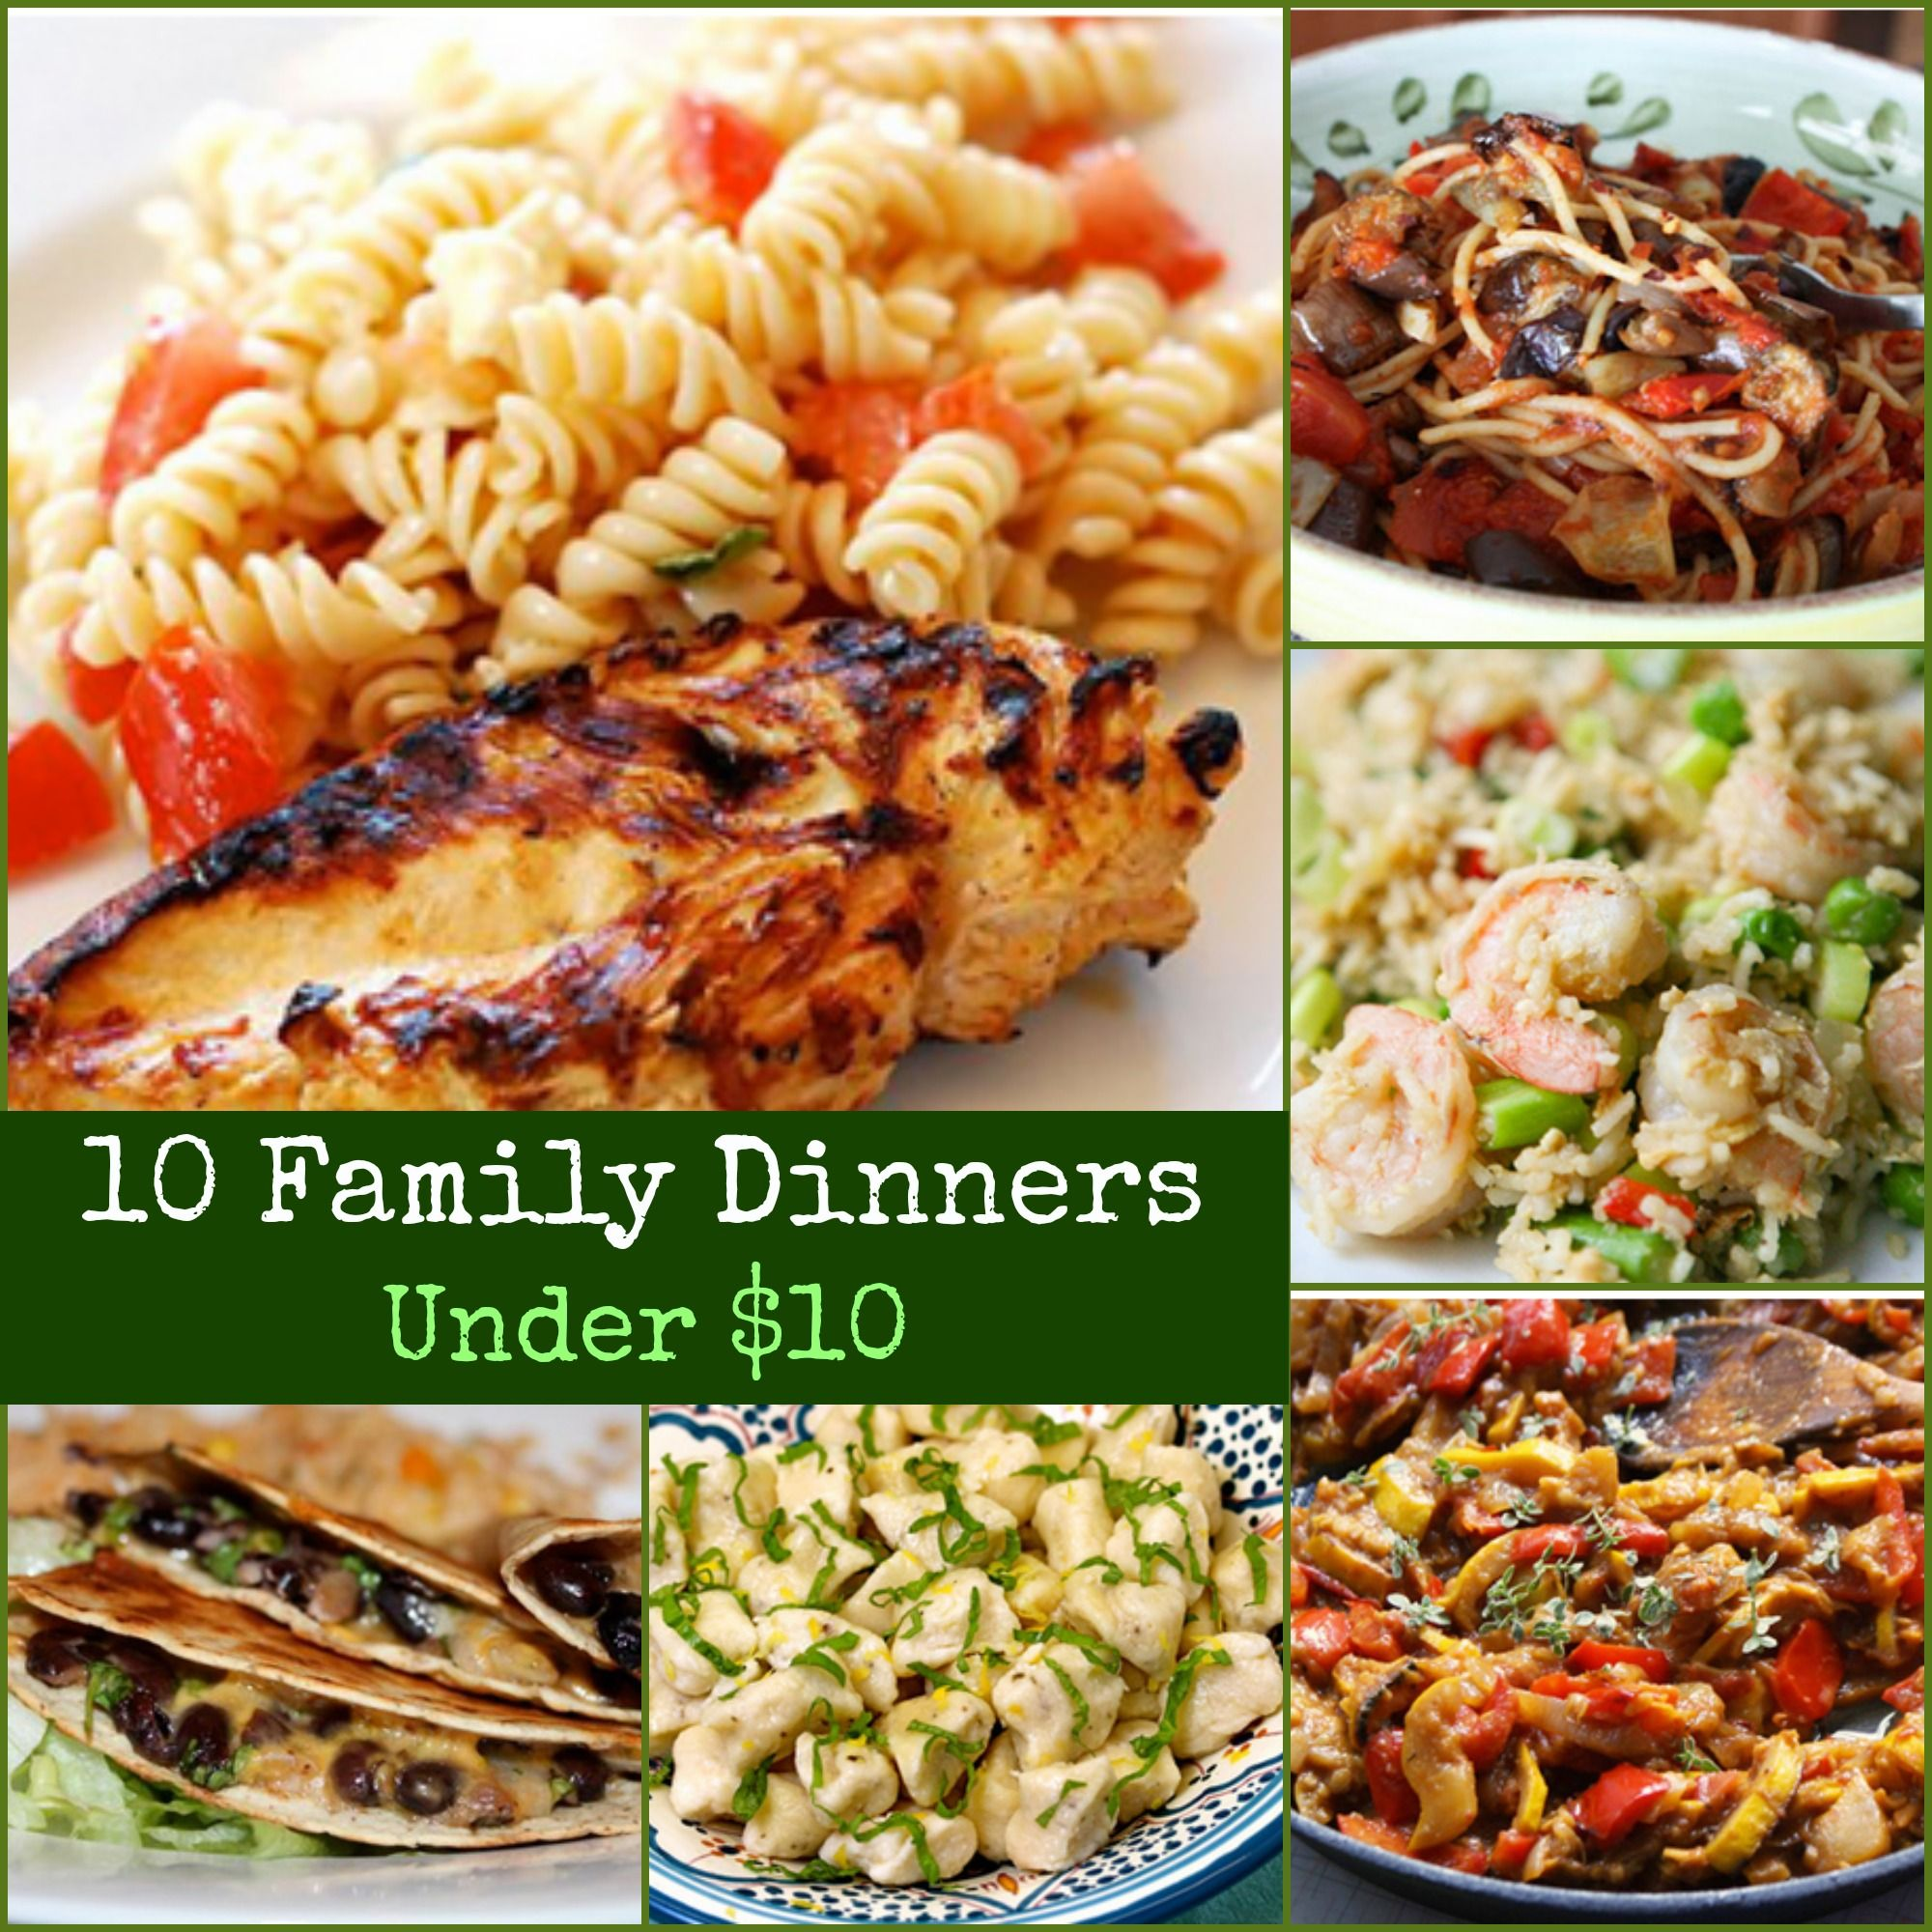 10 Cheap Family Dinner Recipes Under $10